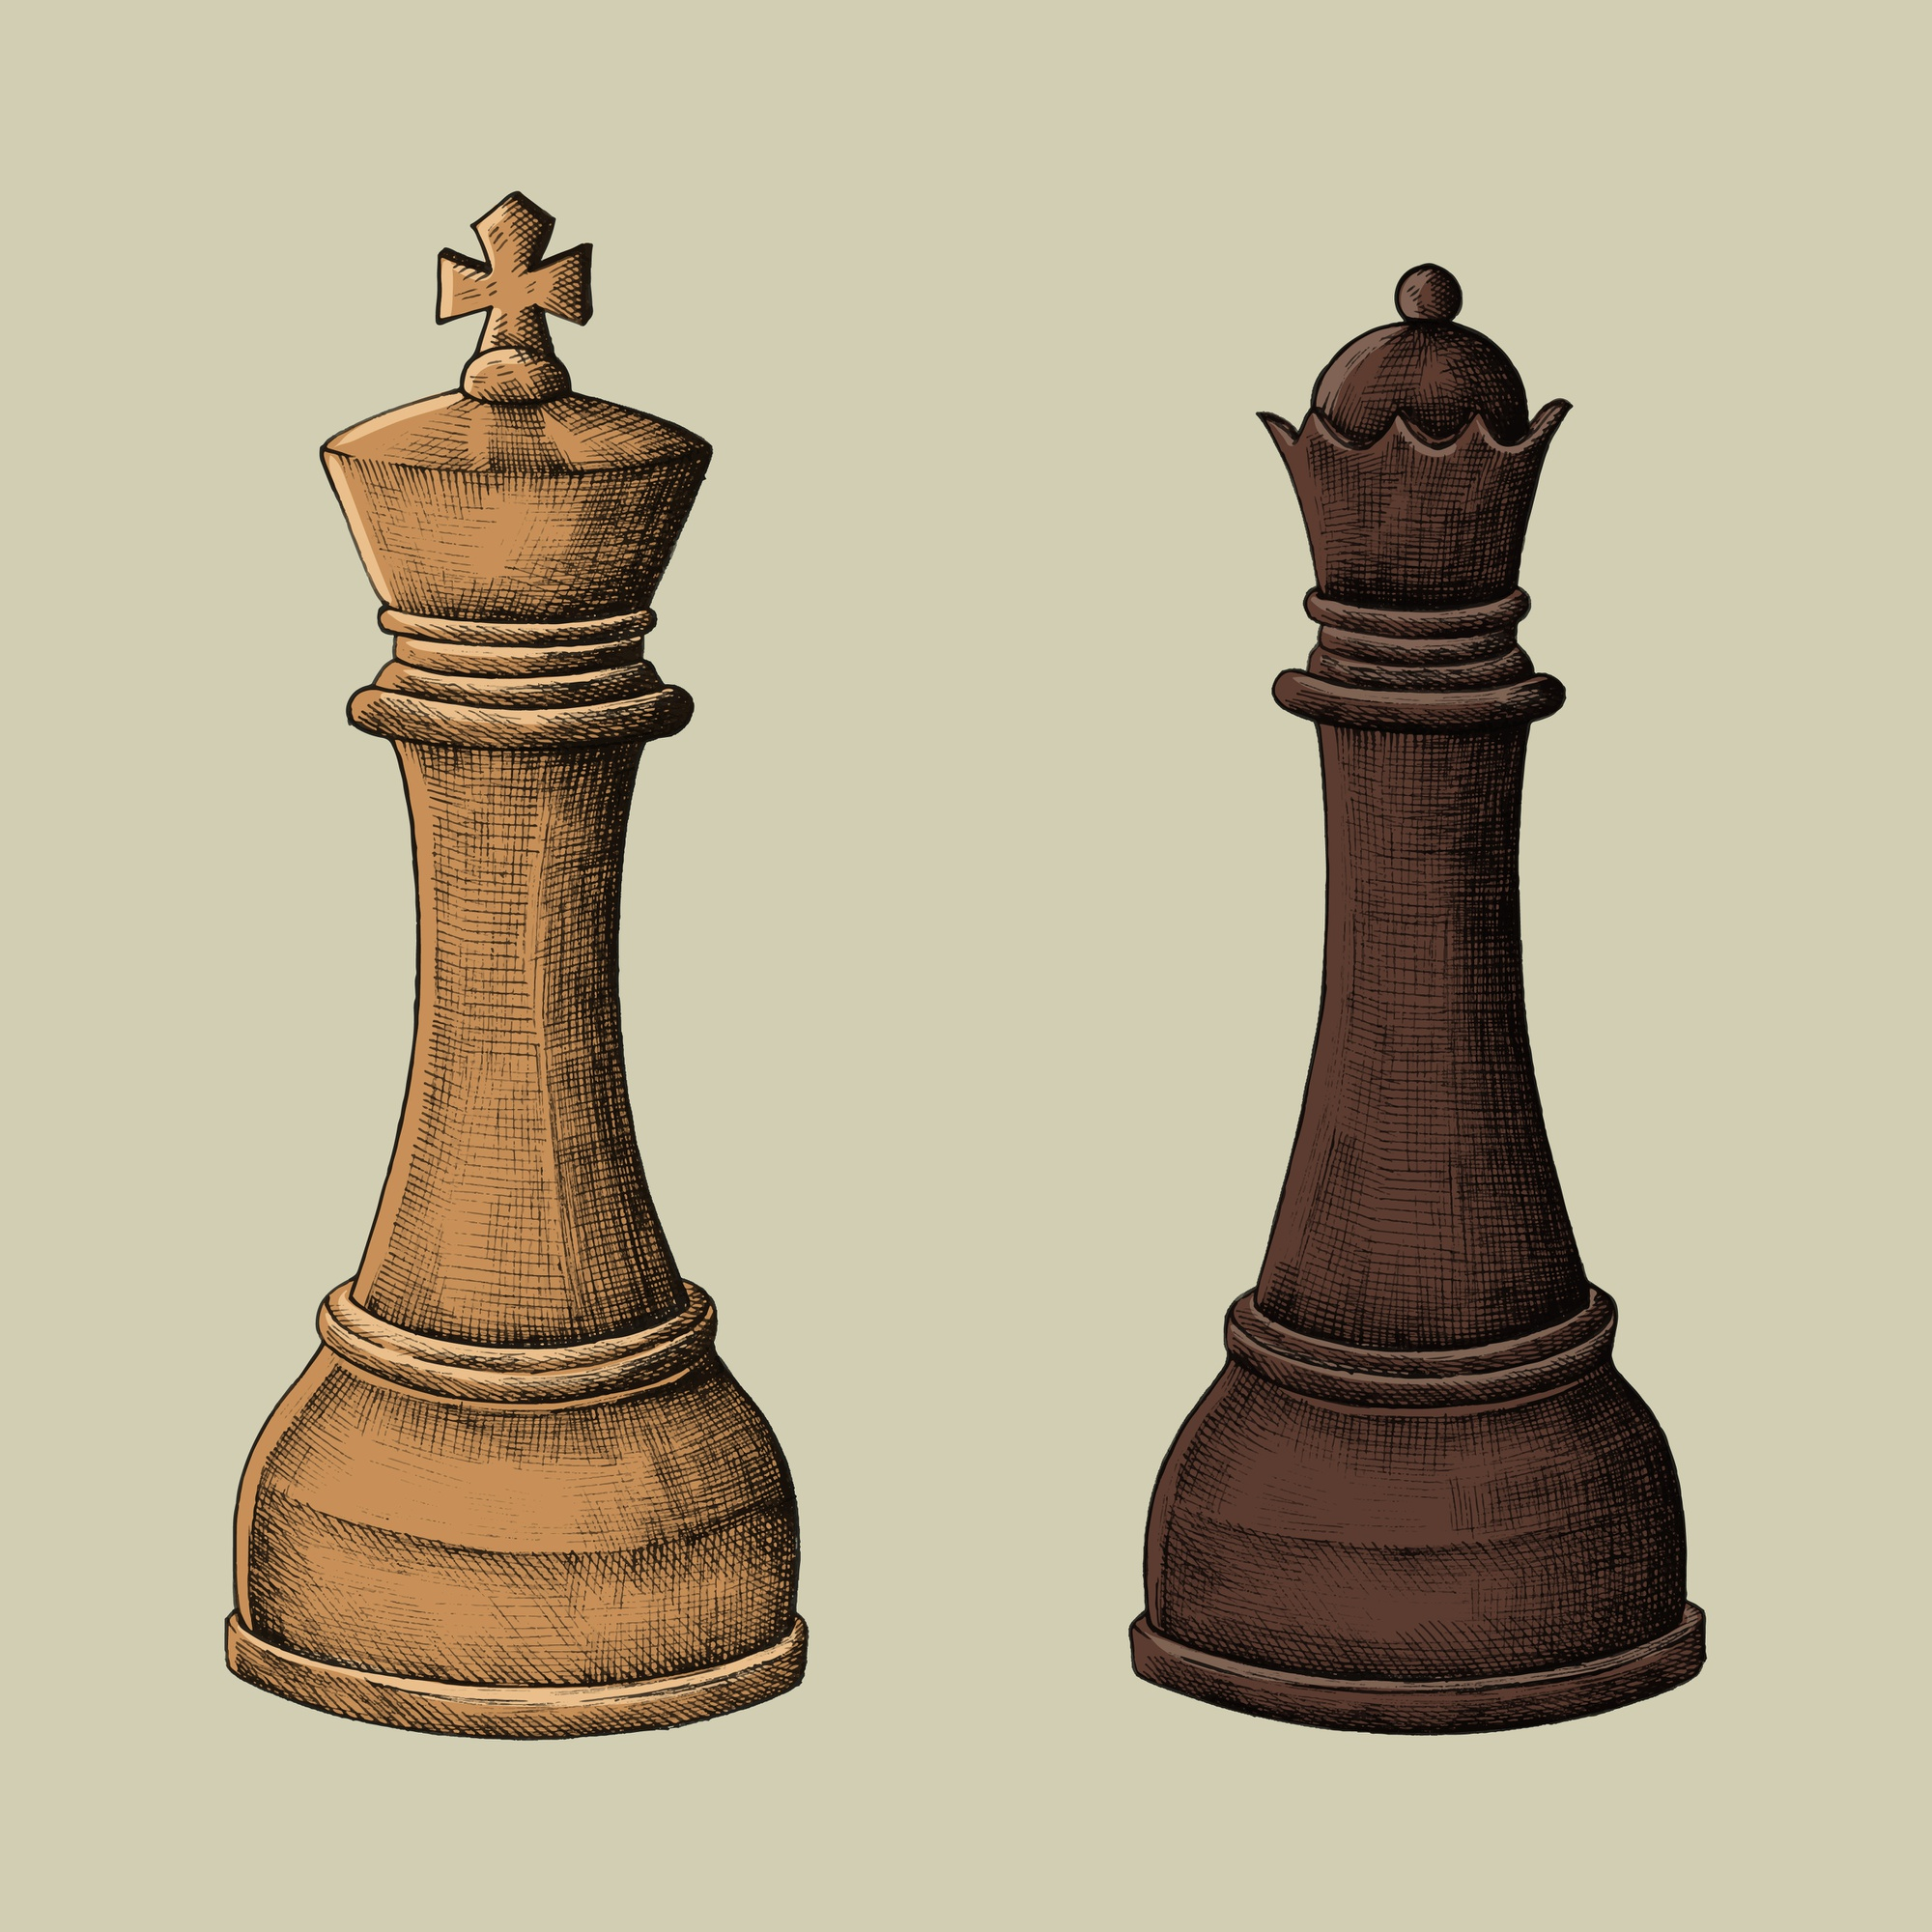 Hand-drawn chess king and queen illustration